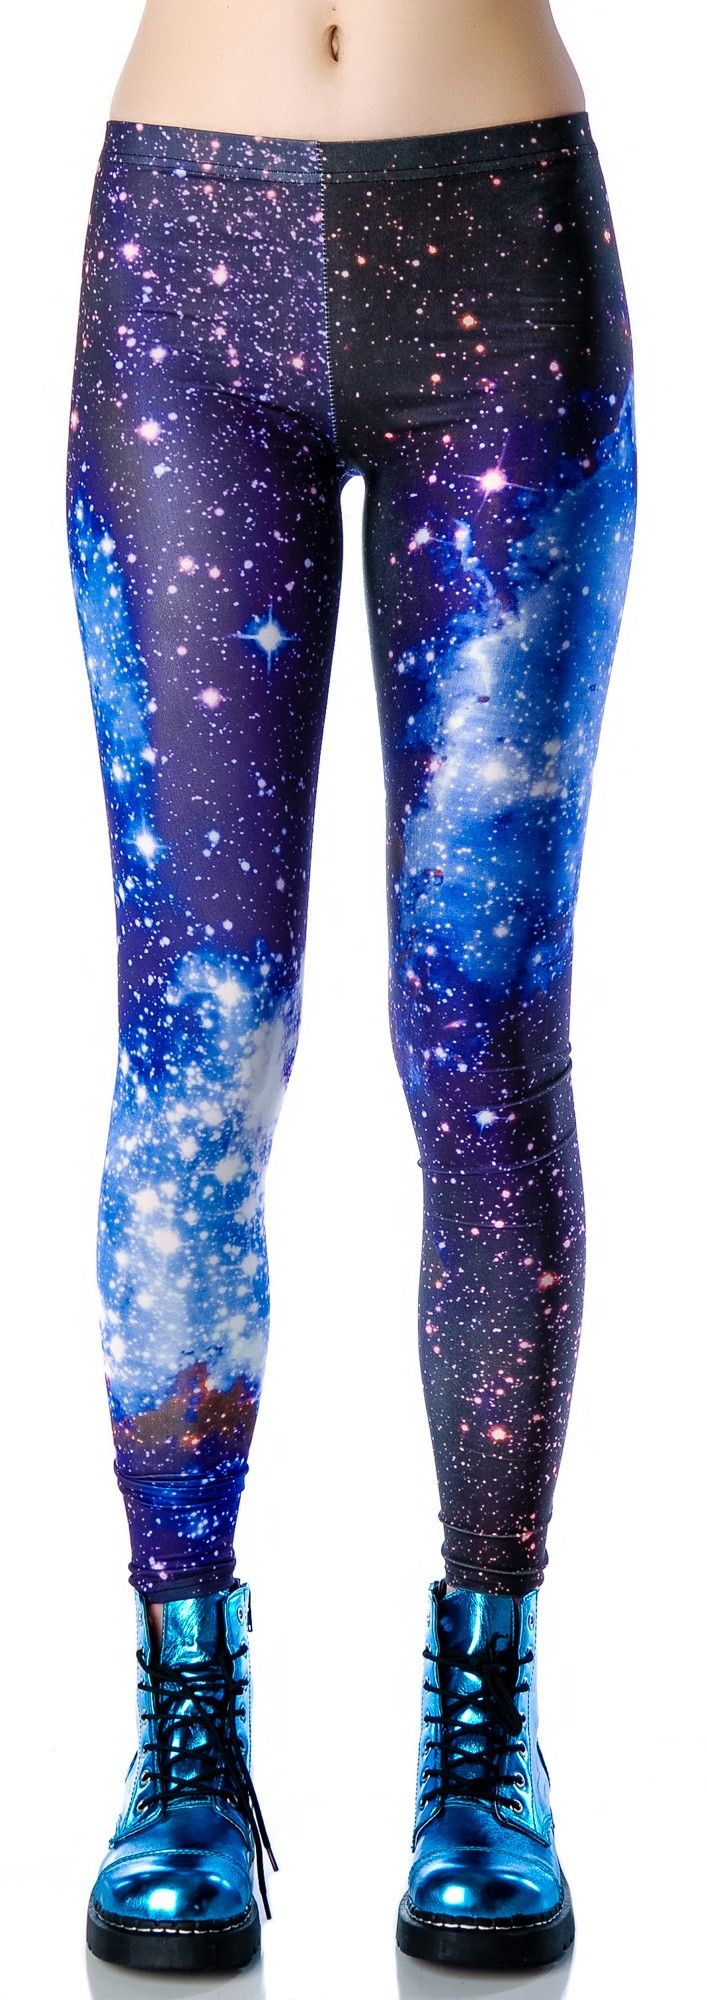 Womens S Blue Leggings Tights Soft Unif Hipster Print Sexy Milk Black GALAXY S/M